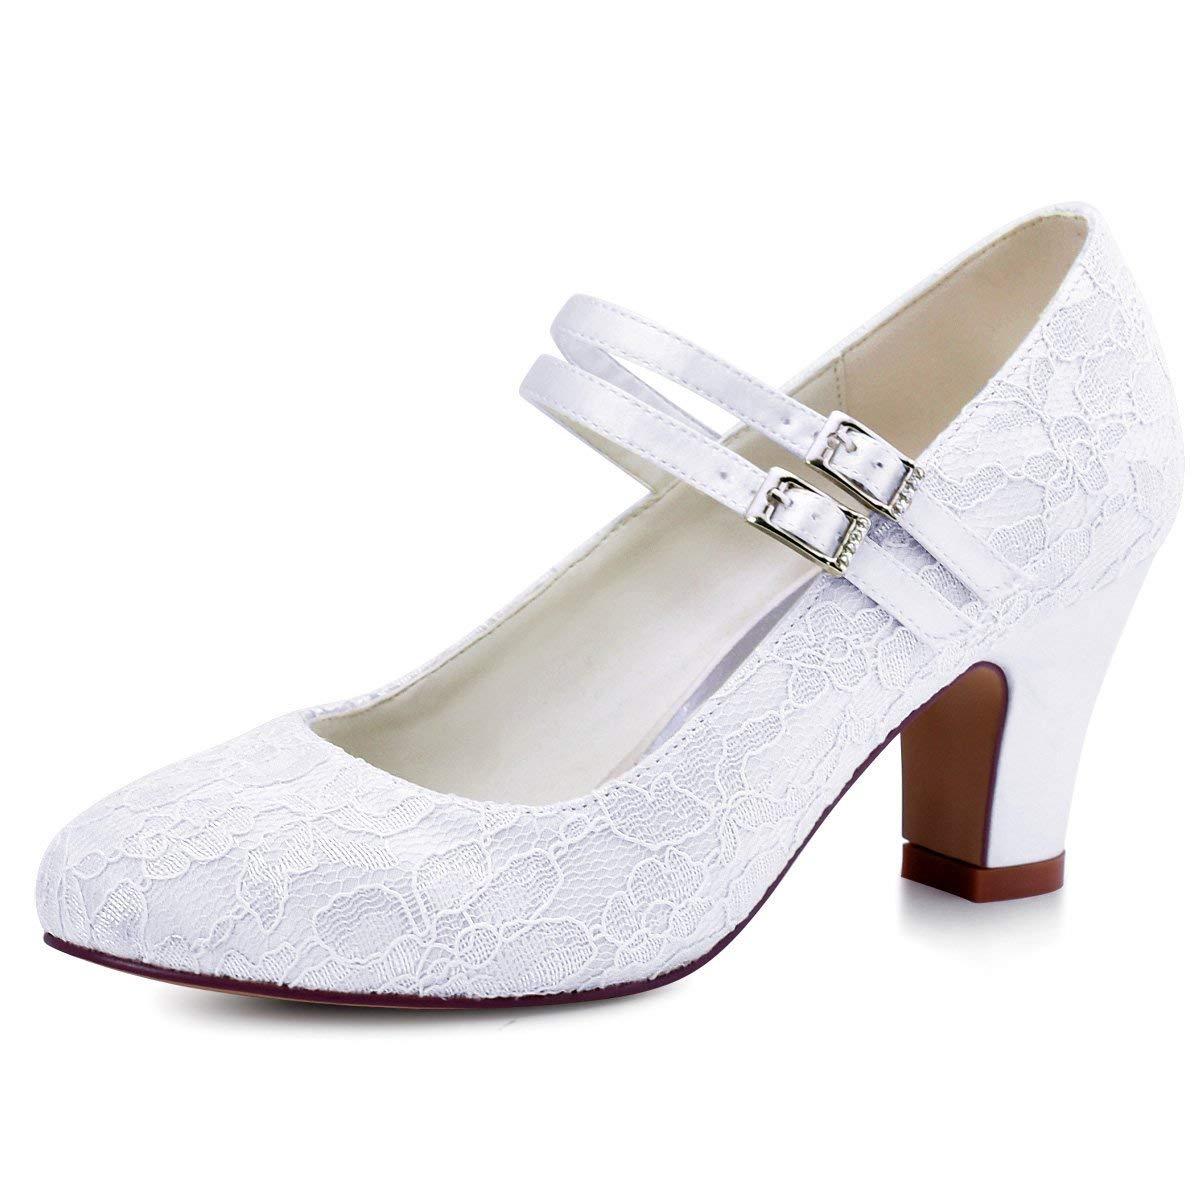 2a8abc6c8 Get Quotations · ElegantPark HC1708 Women Mary Jane Block Heel Pumps Closed  Toe Lace Bridal Wedding Shoes